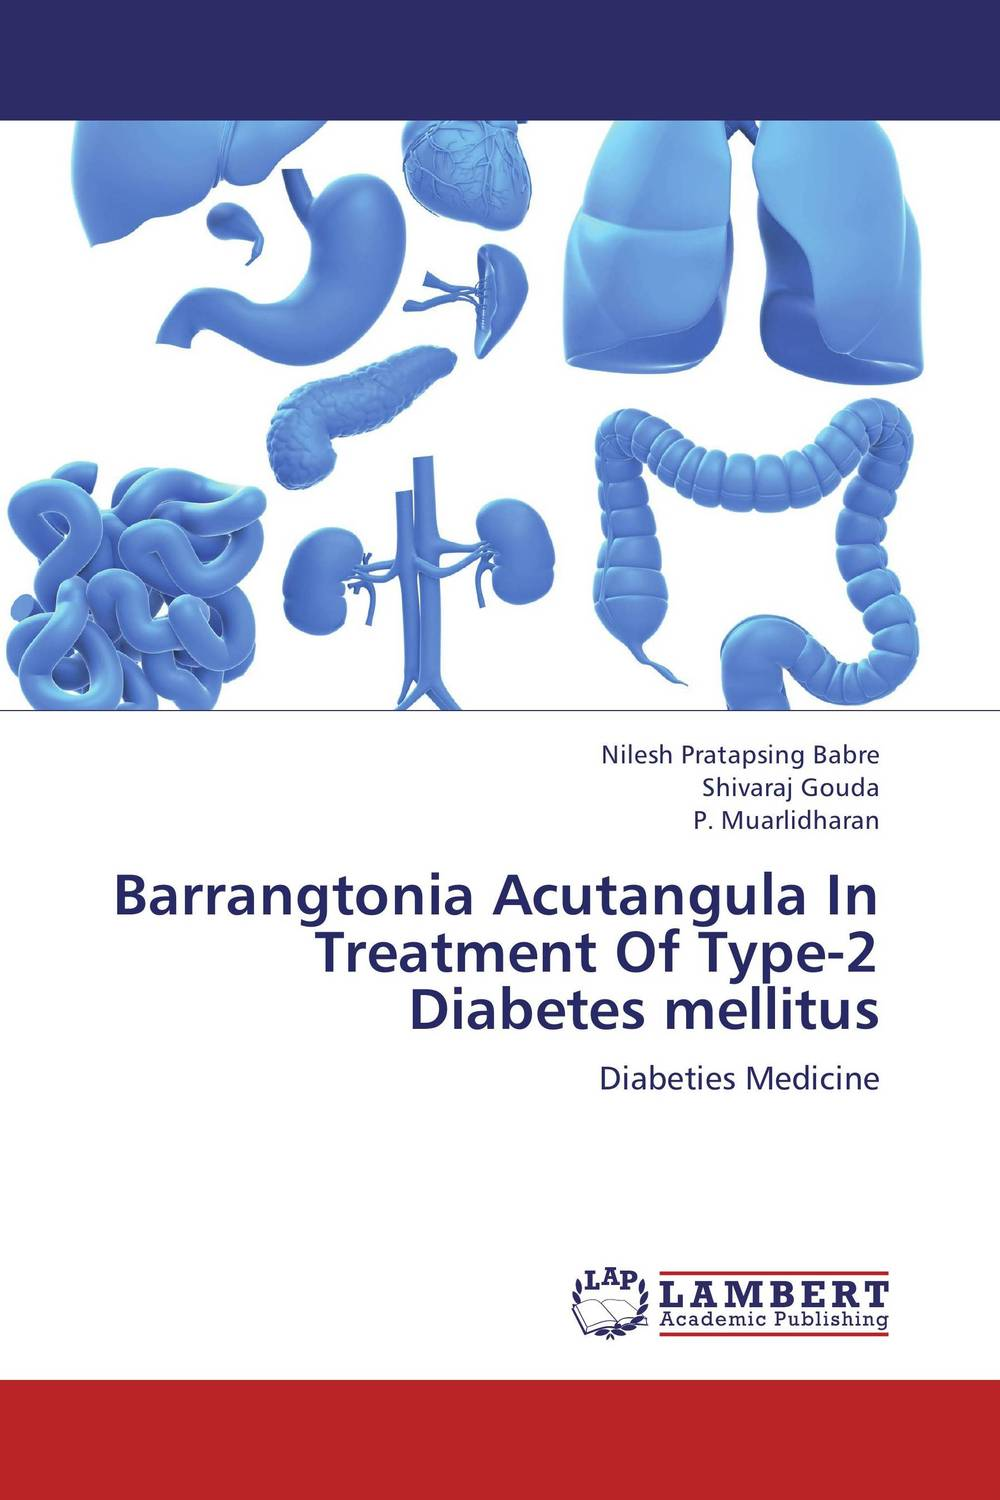 Barrangtonia Acutangula In  Treatment Of Type-2 Diabetes mellitus sharad leve rakesh verma and rakesh kumar dixit role of irbesartan and curcumin in type 2 diabetes mellitus